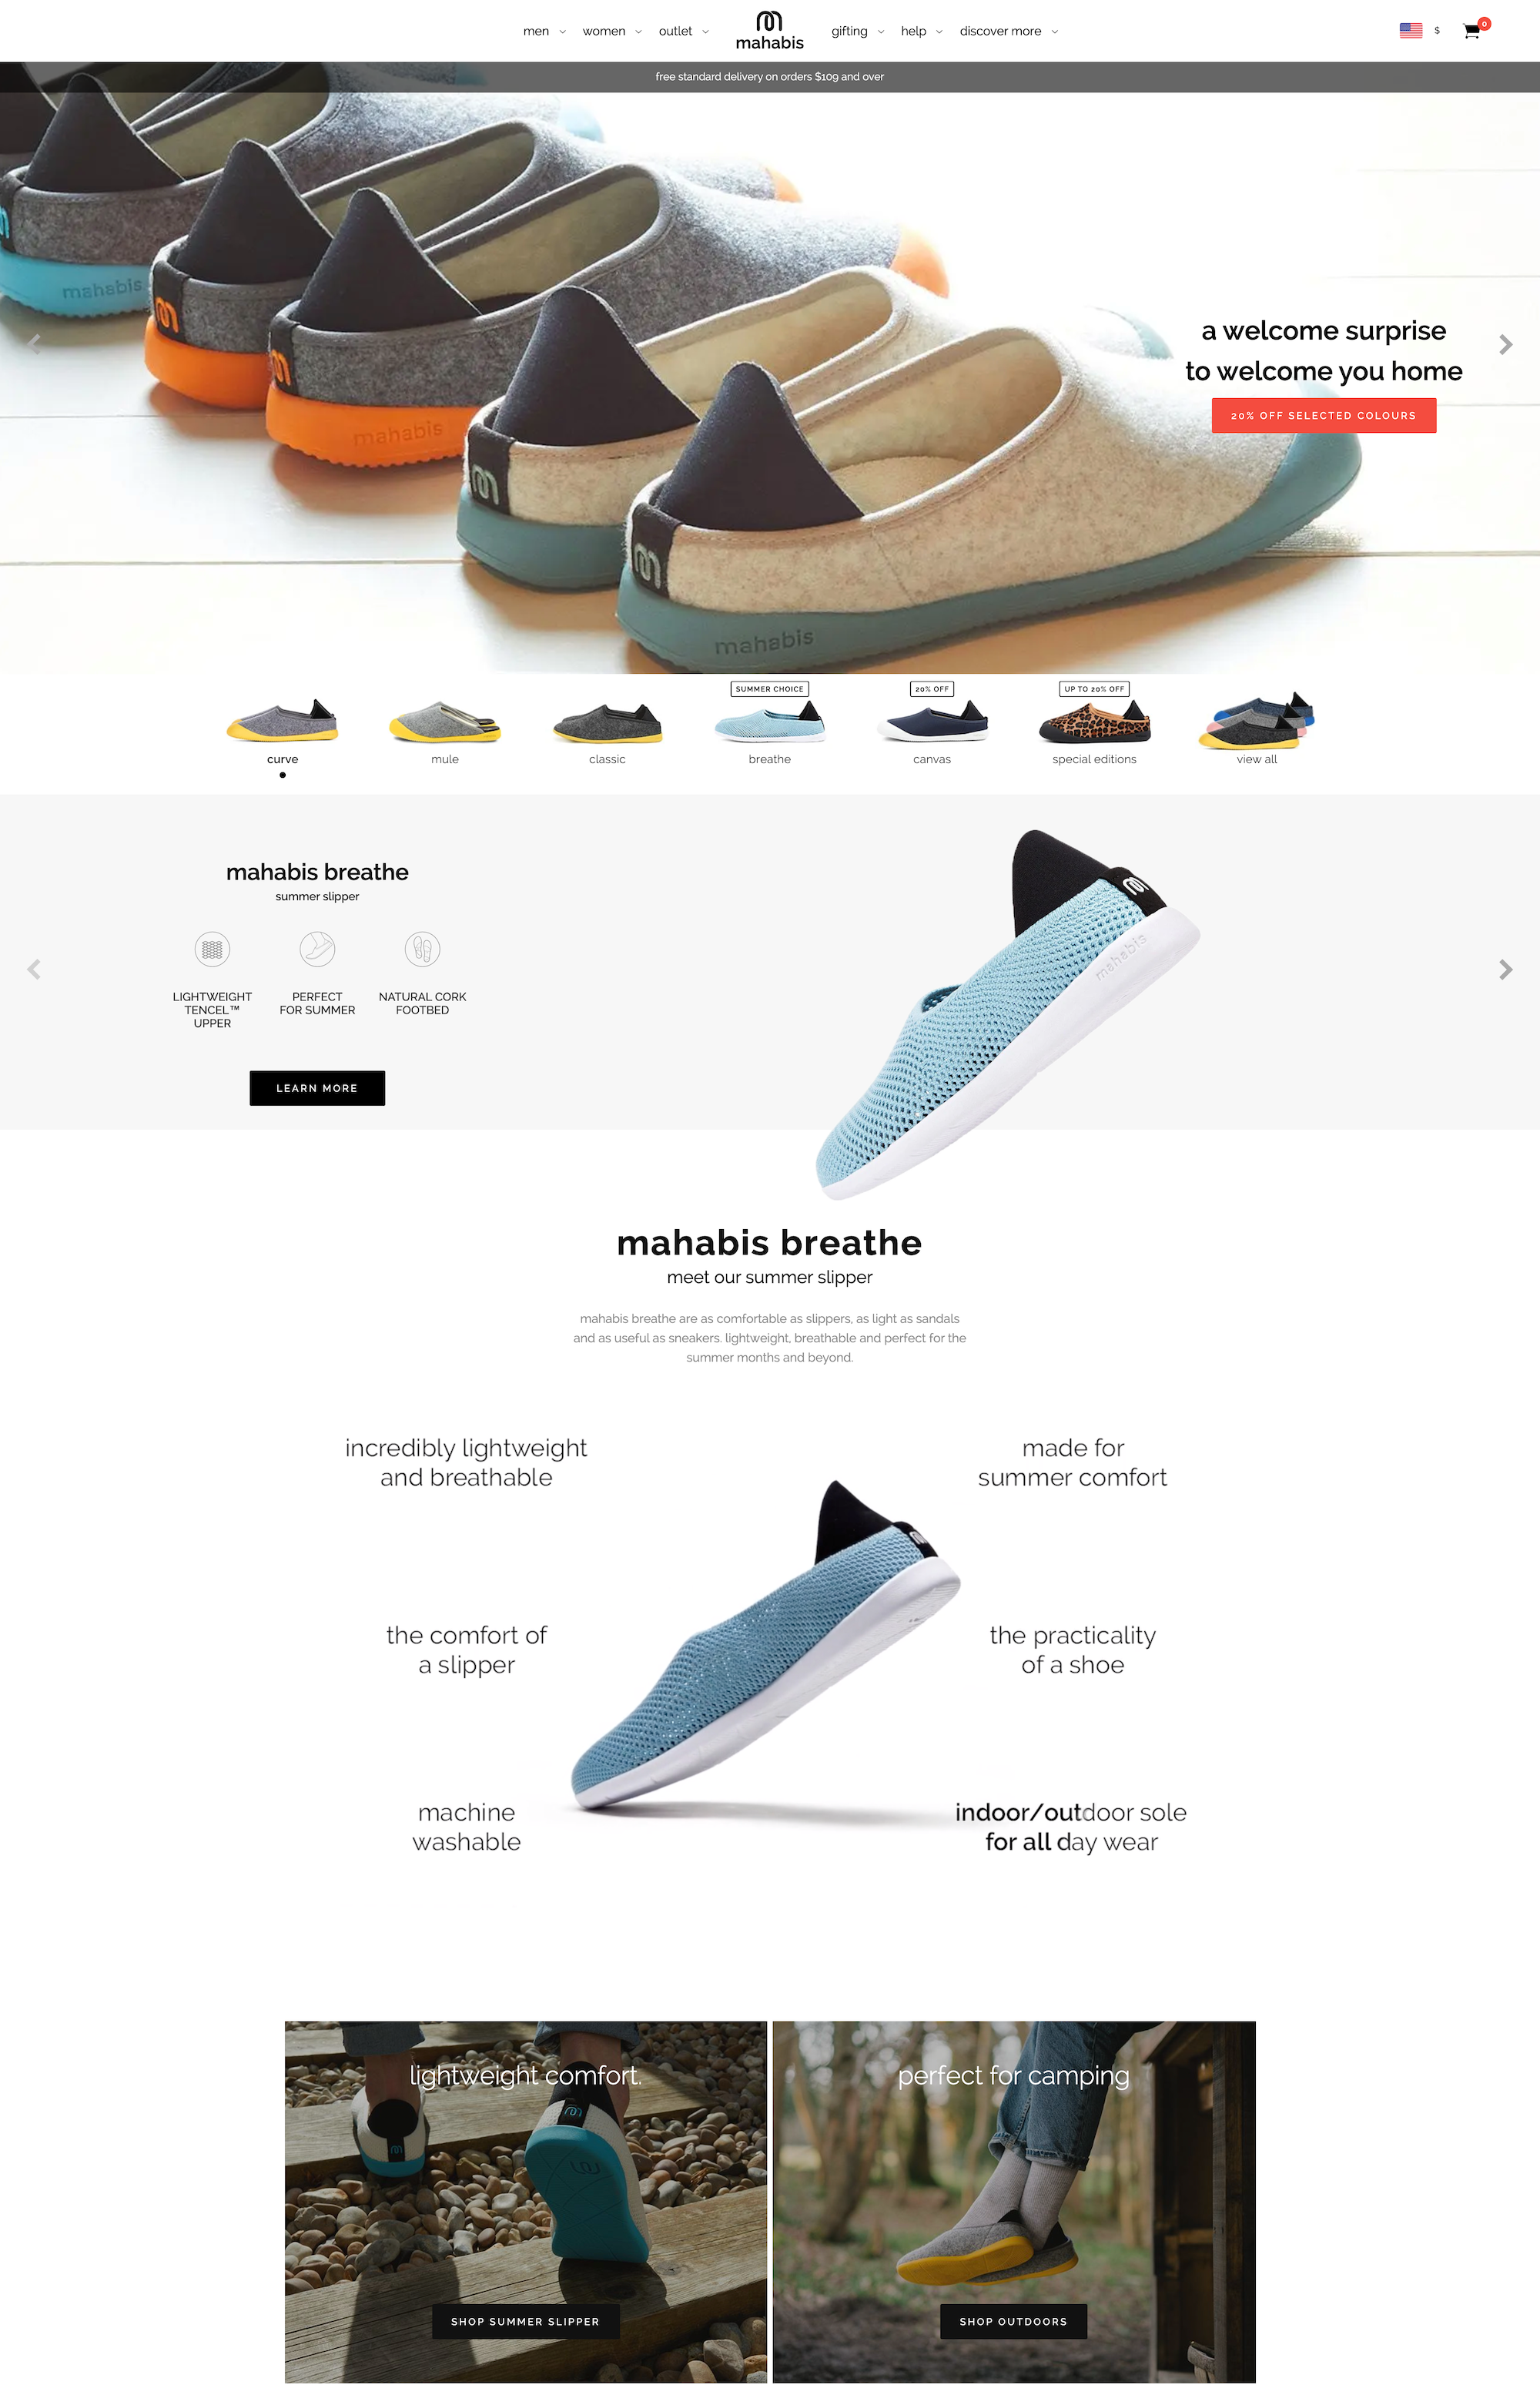 mahabis homepage top half slippers featured products